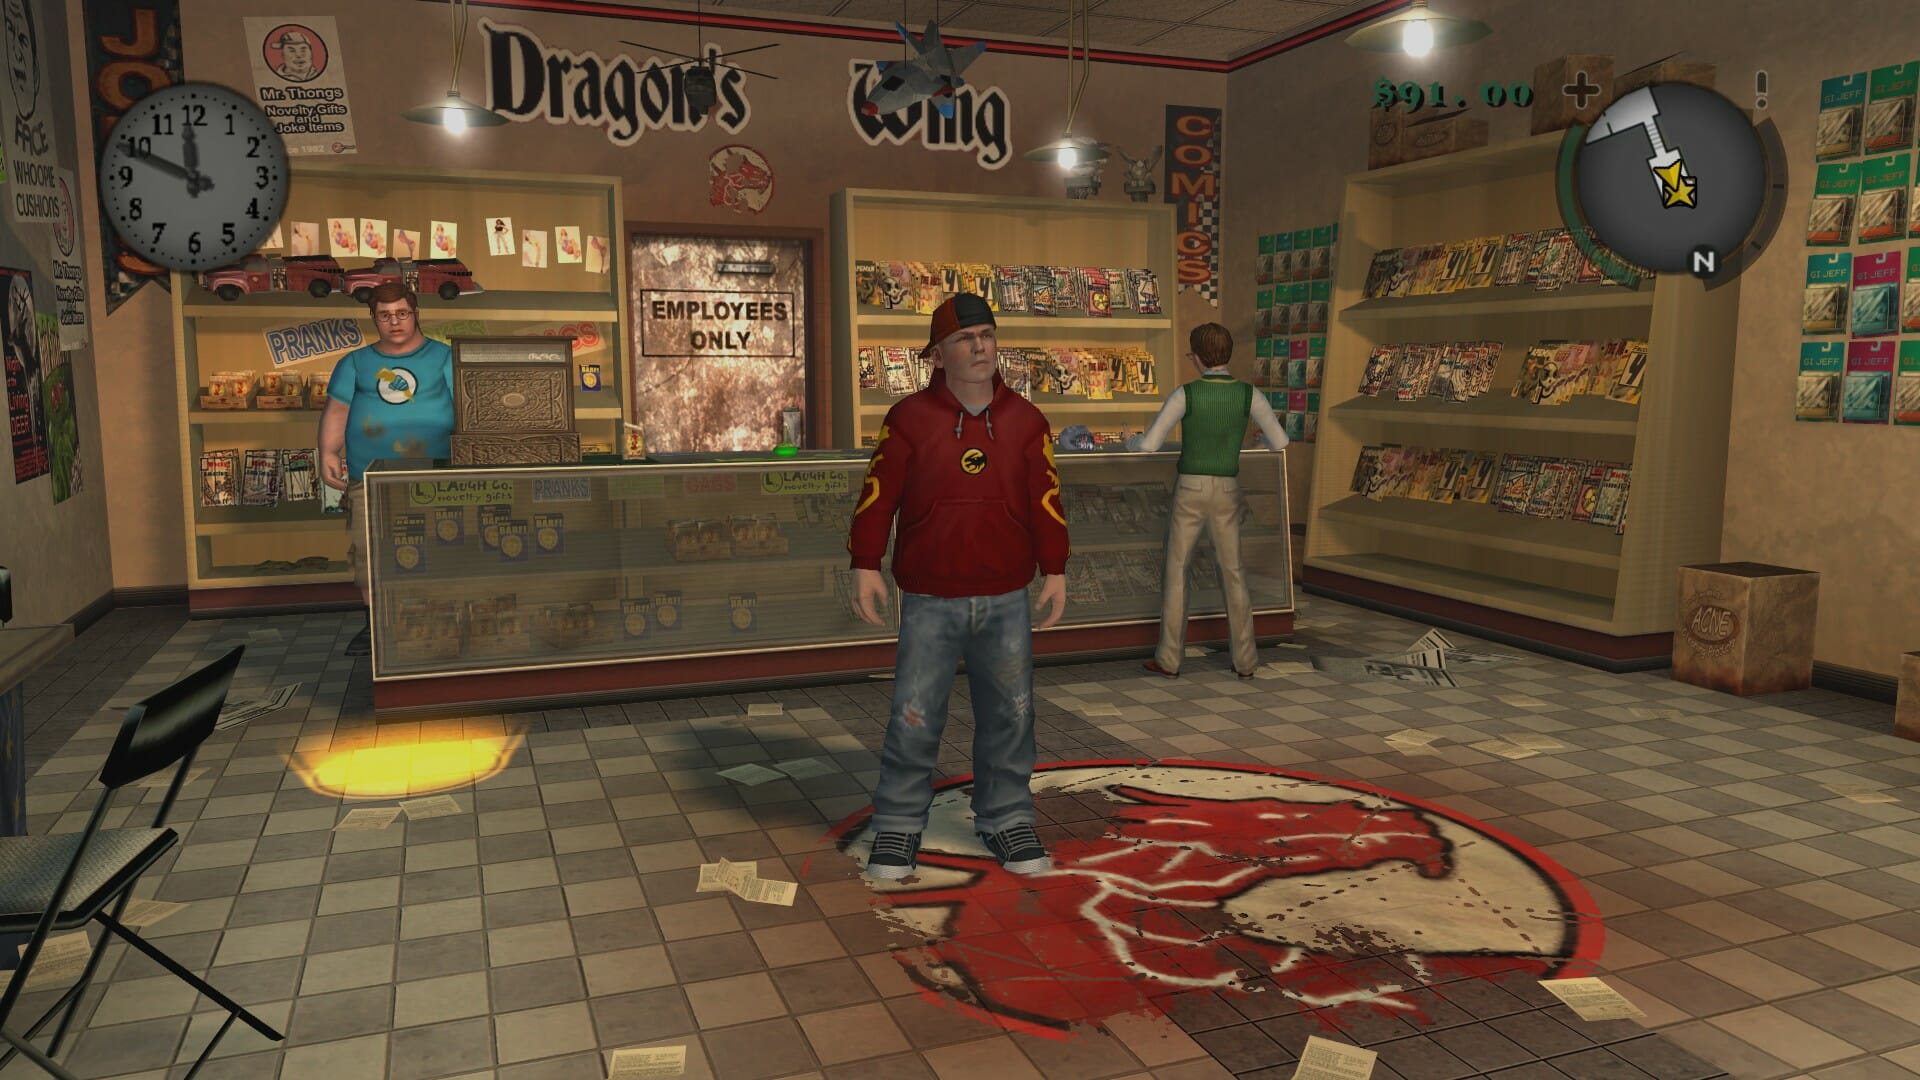 Are Rockstar planning a Bully Sequel Before GTA 6? - The